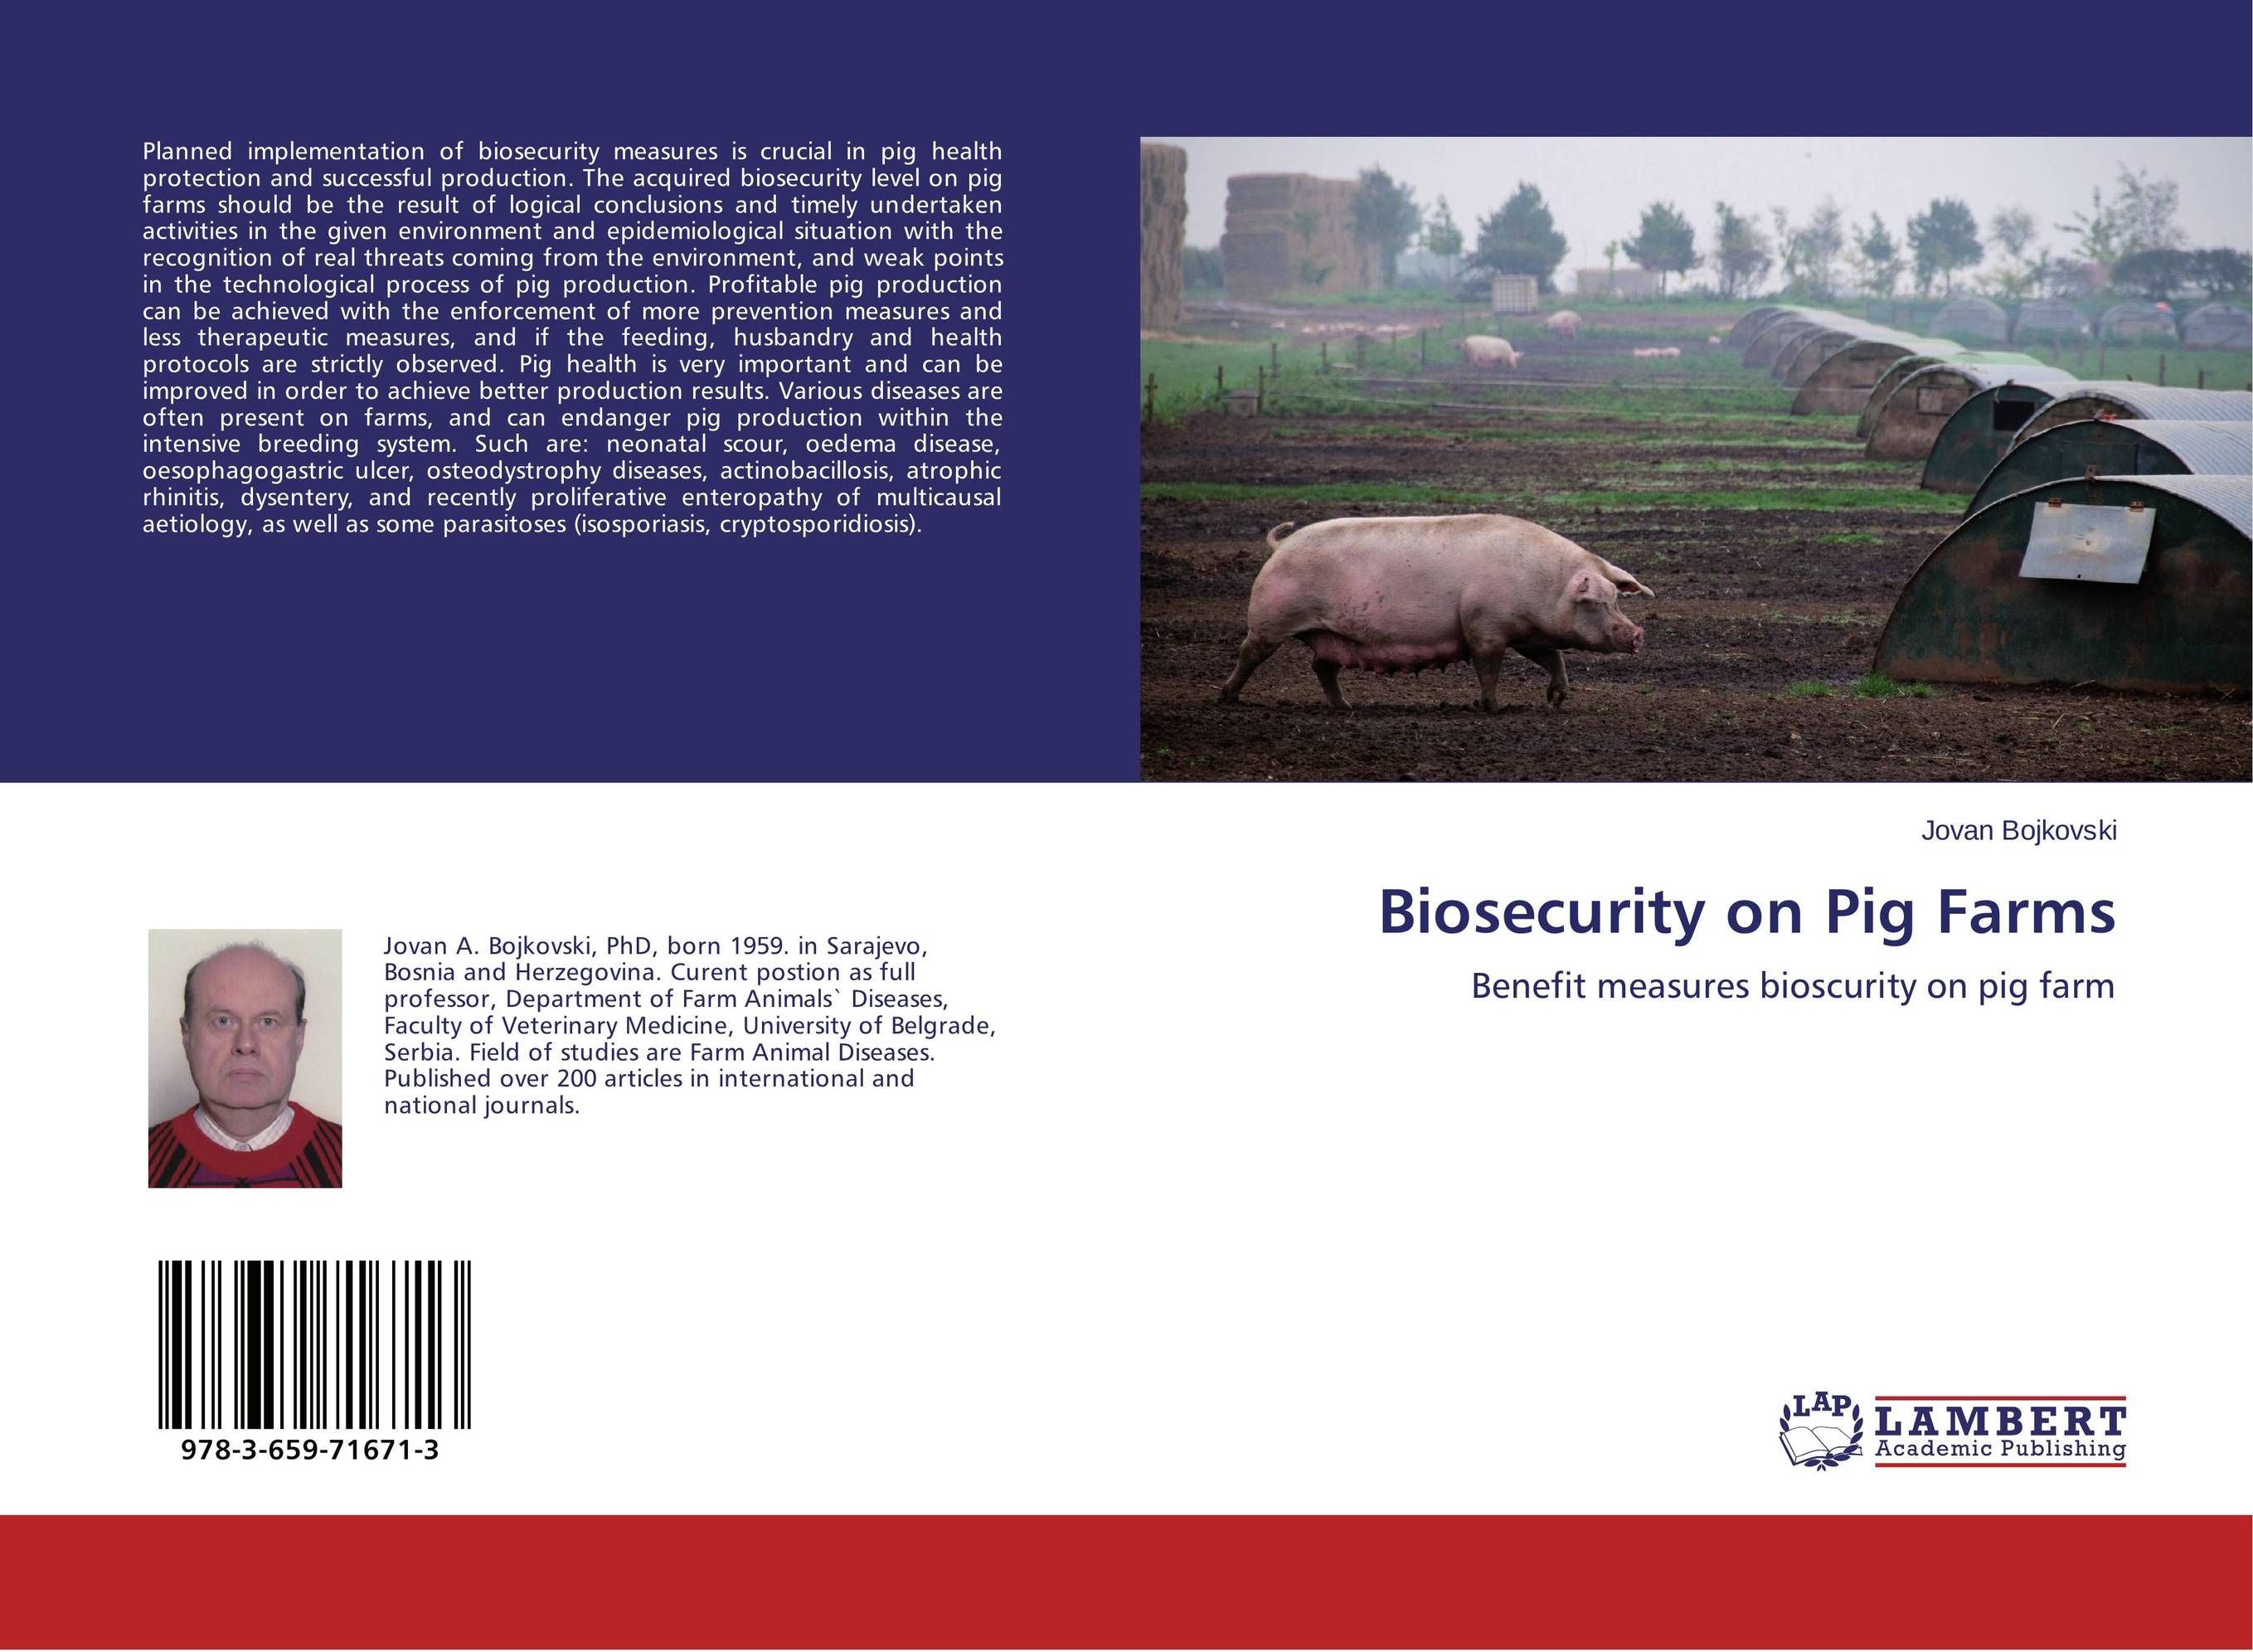 Biosecurity on Pig Farms roles of selenium in farms and in human health